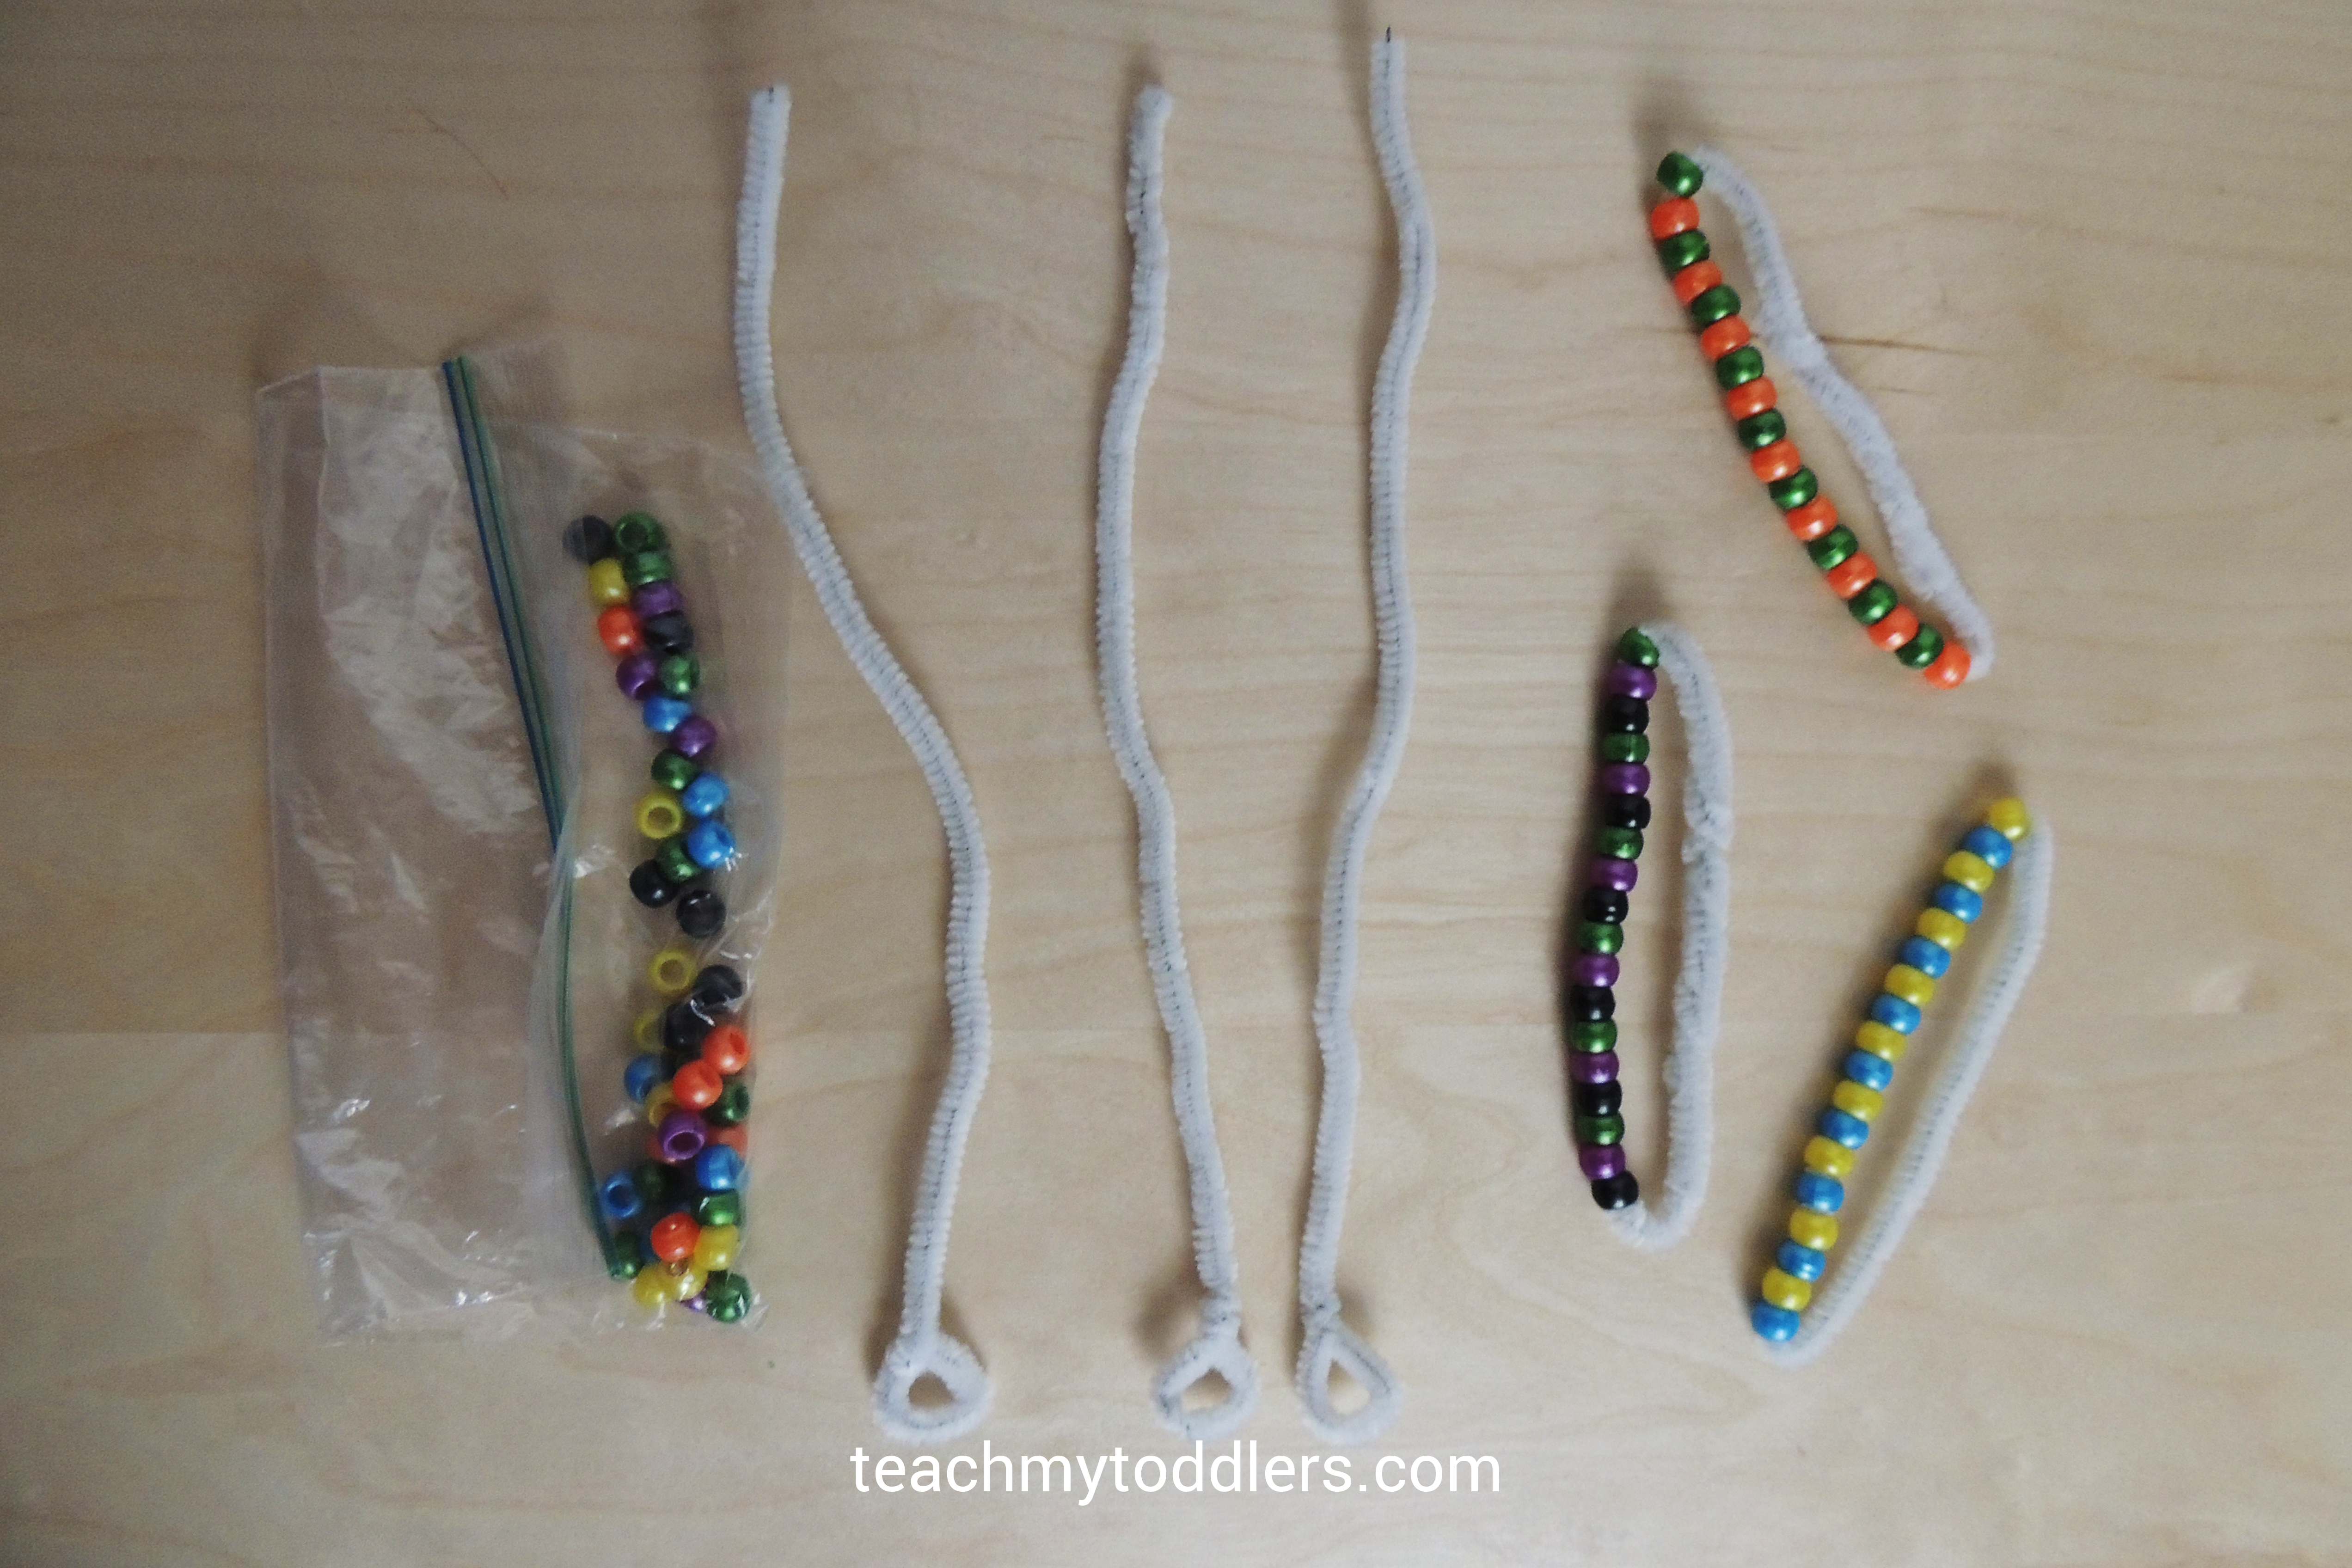 Create patterns with pipe cleaners and pony beads for your toddler to play with during General Conference